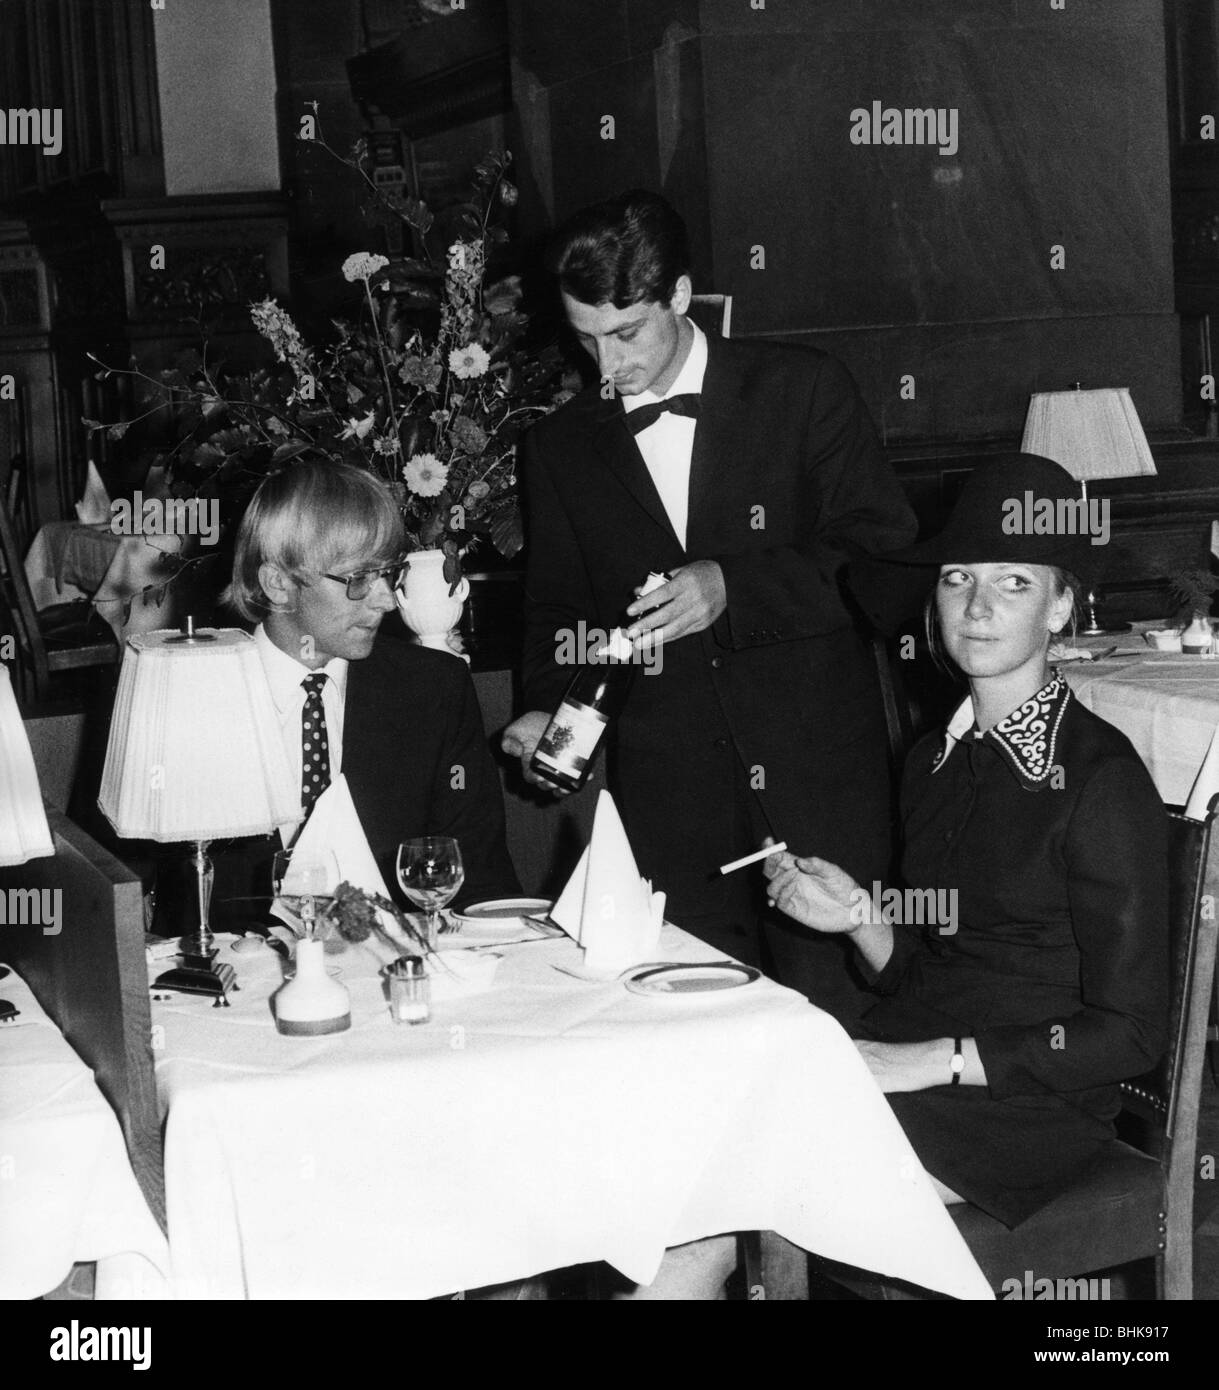 gastronomy, inns, waiter serving wine, July 1970, Additional-Rights-Clearances-NA - Stock Image